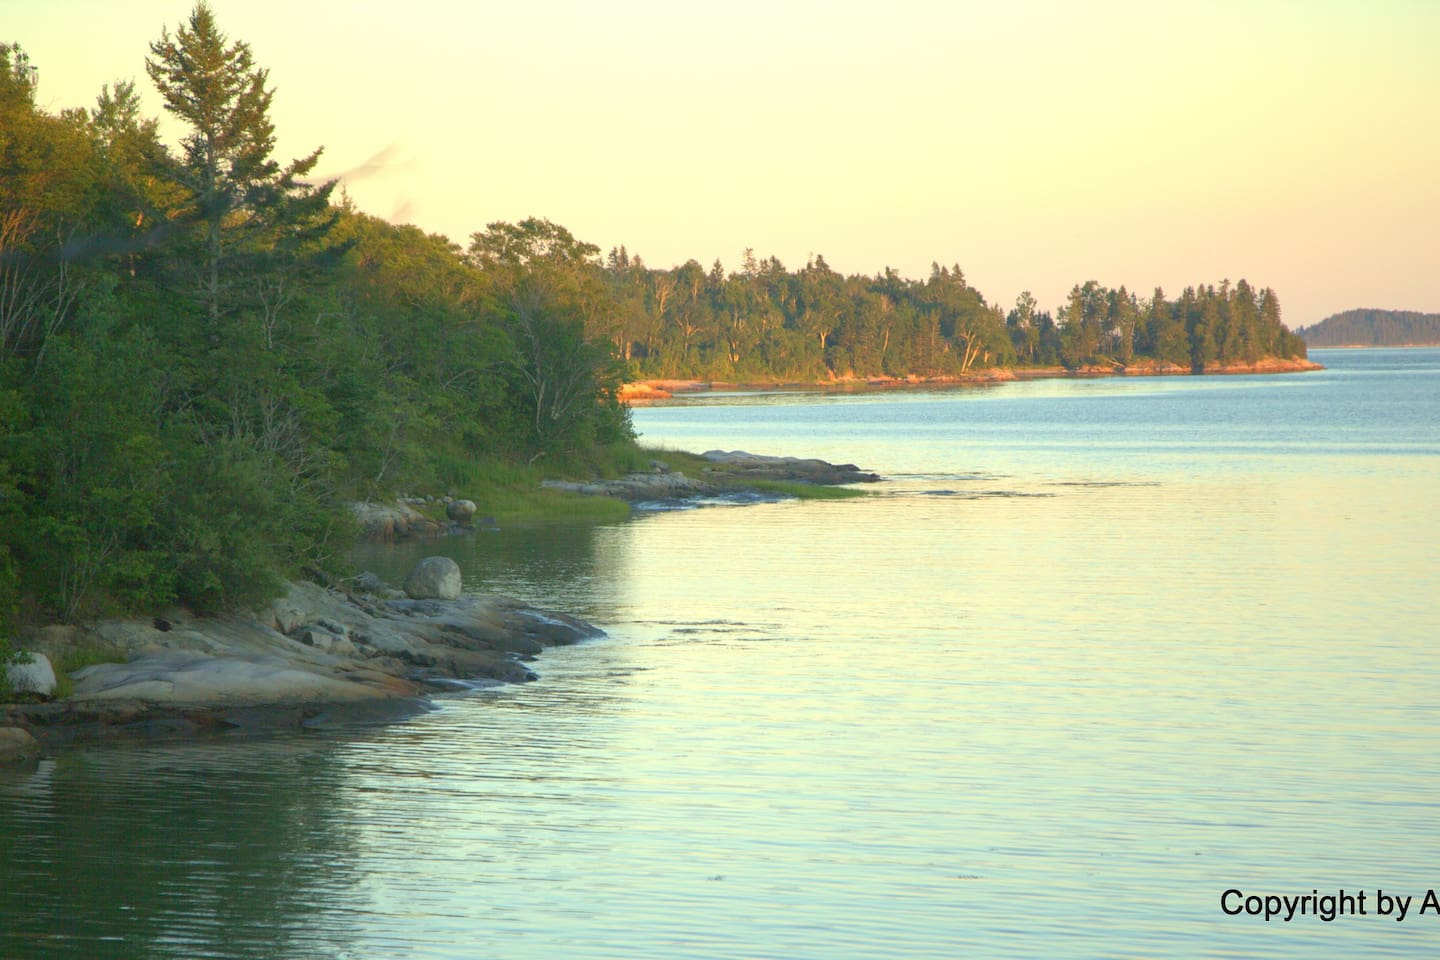 Part of our shoreline on this tidal cove, viewed from the end of the Point. At far right are islands out in Narraguagus Bay, and beyond them, the Atlantic.  (Taken by a guest in July 2018 and used by kind permission. Photo ©Arnold Dalene.)